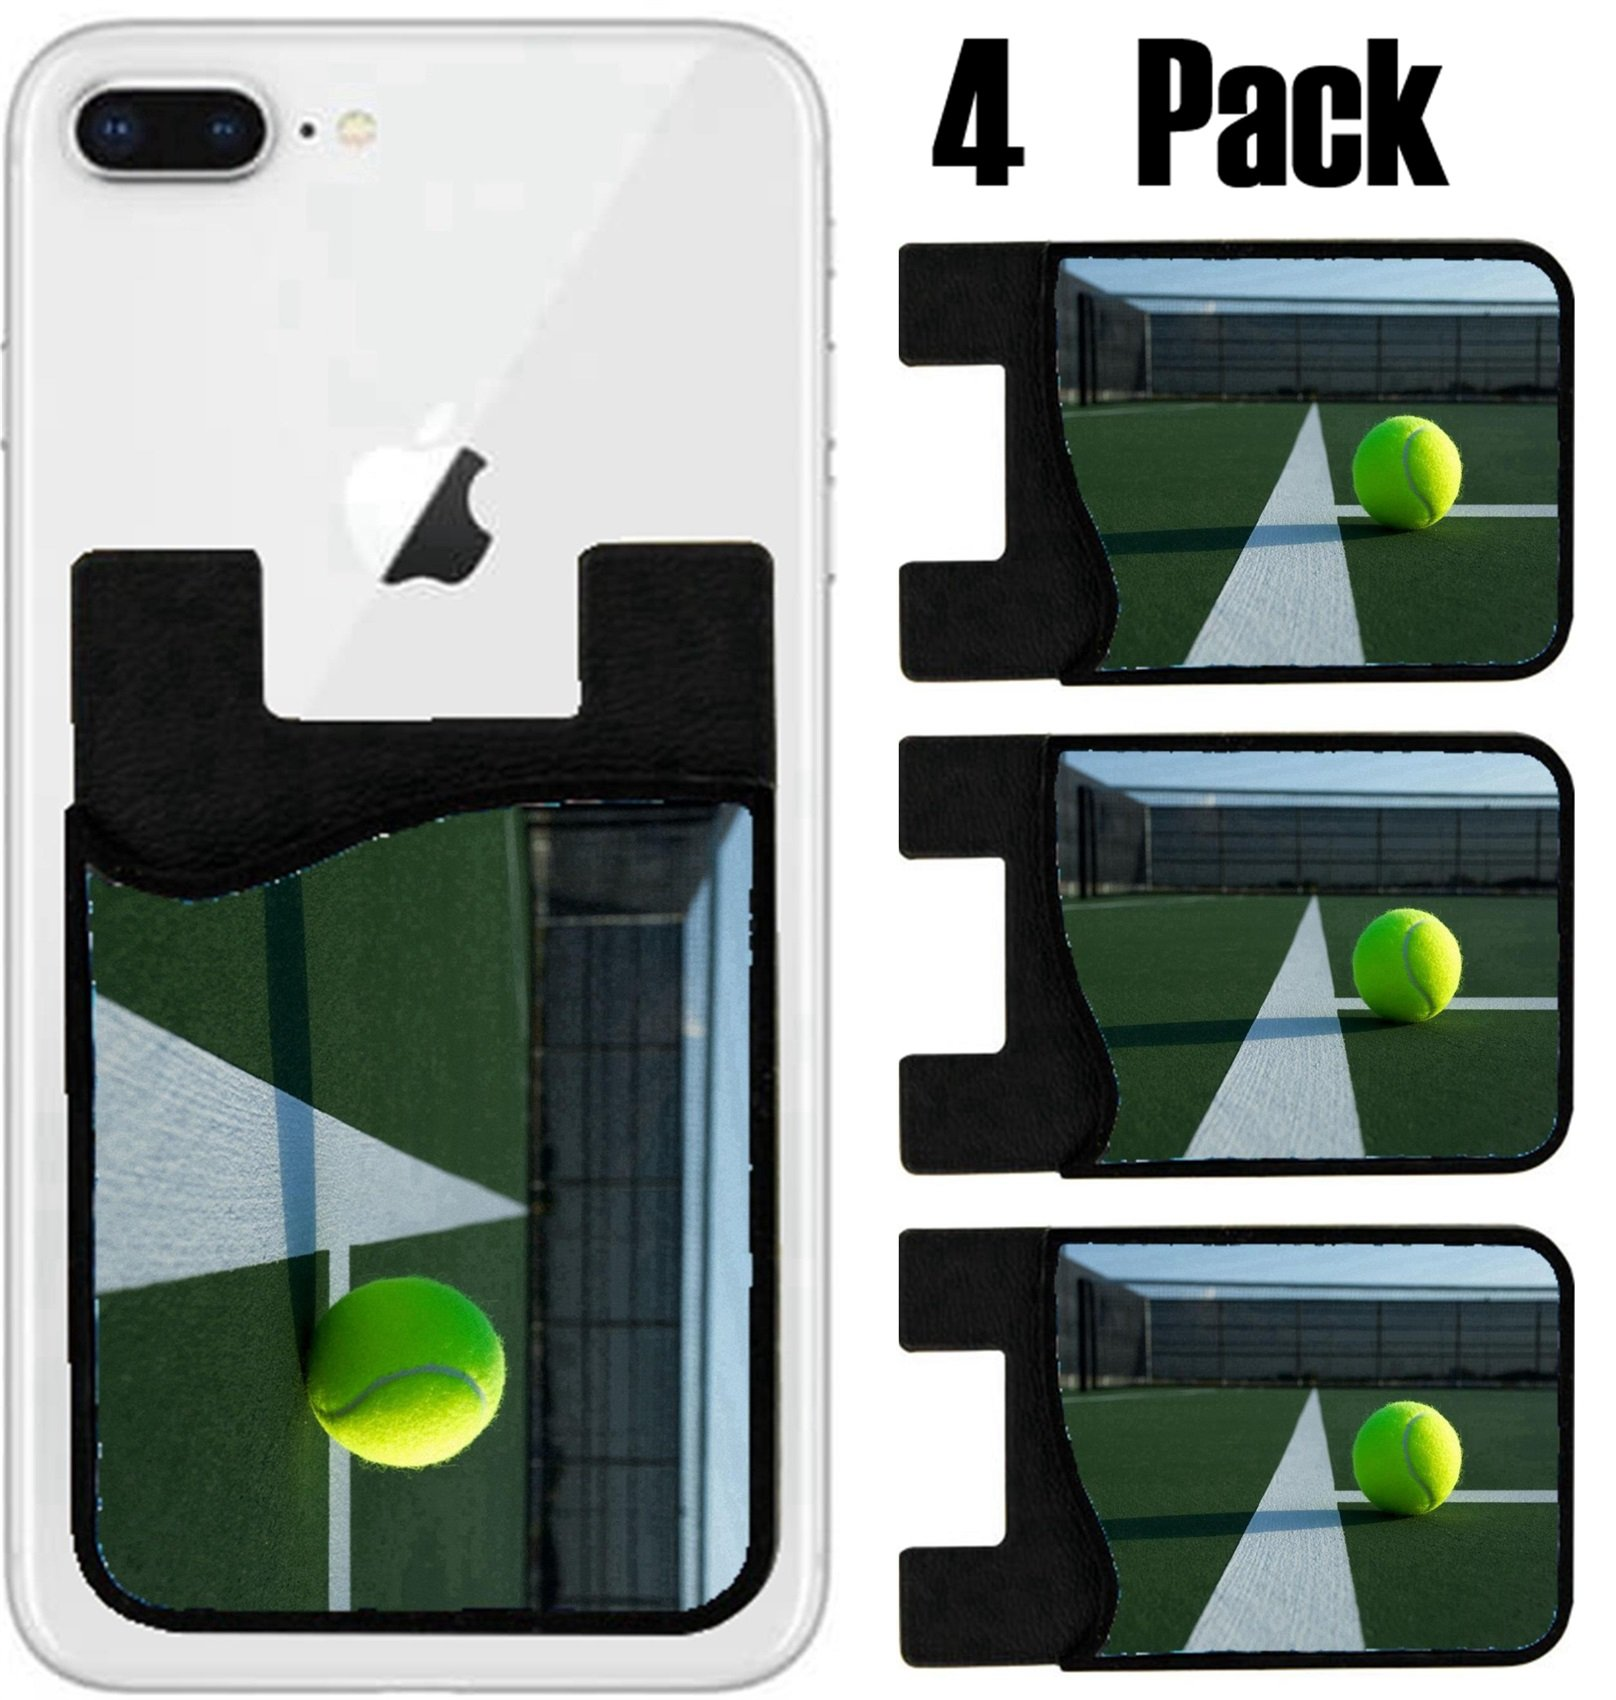 MSD Phone Card holder, sleeve/wallet for iPhone Samsung Android and all smartphones with removable microfiber screen cleaner Silicone card Caddy(4 Pack) Tennis Ball Close up with Court Lines IMAGE 188